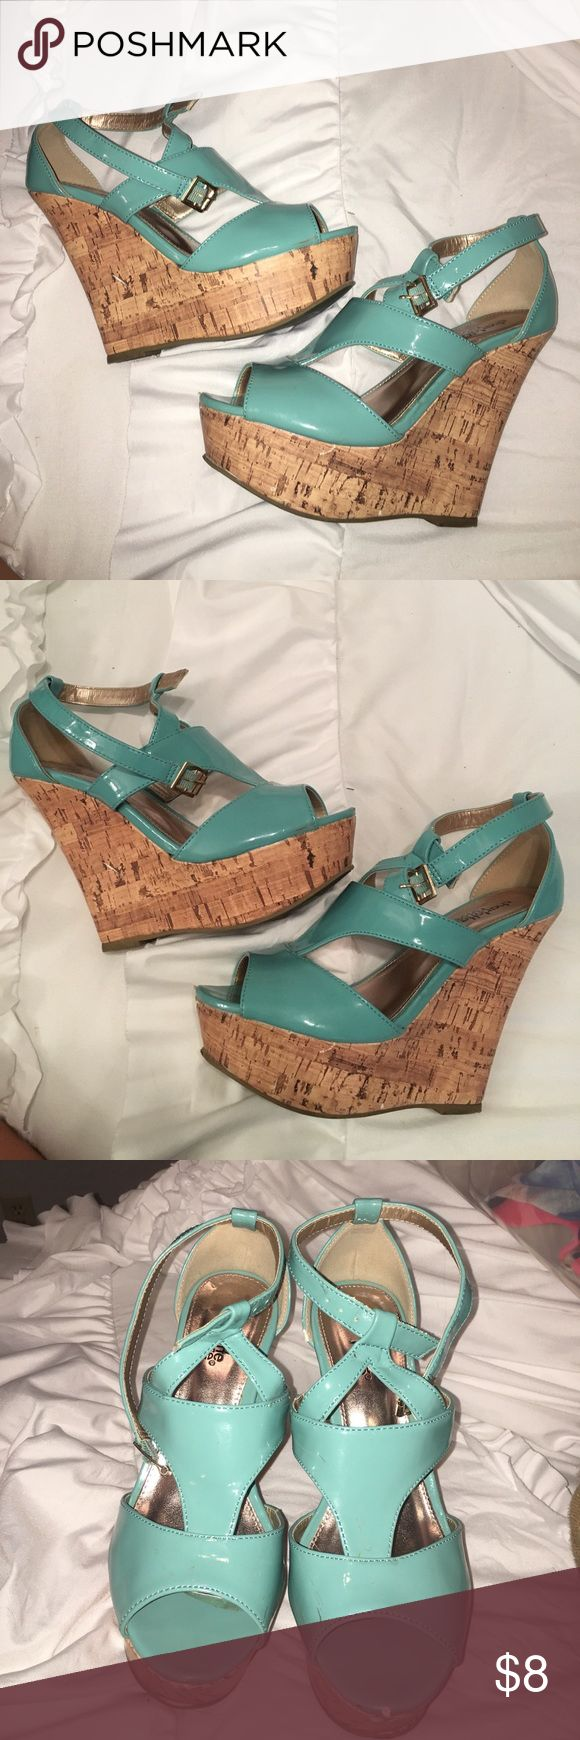 Turquoise Wedges Turquoise wedges from Charlotte Russe. Size 6. Worn before, noticeable scuffs on front of heels in cork area. Offers welcome. Shoes Wedges